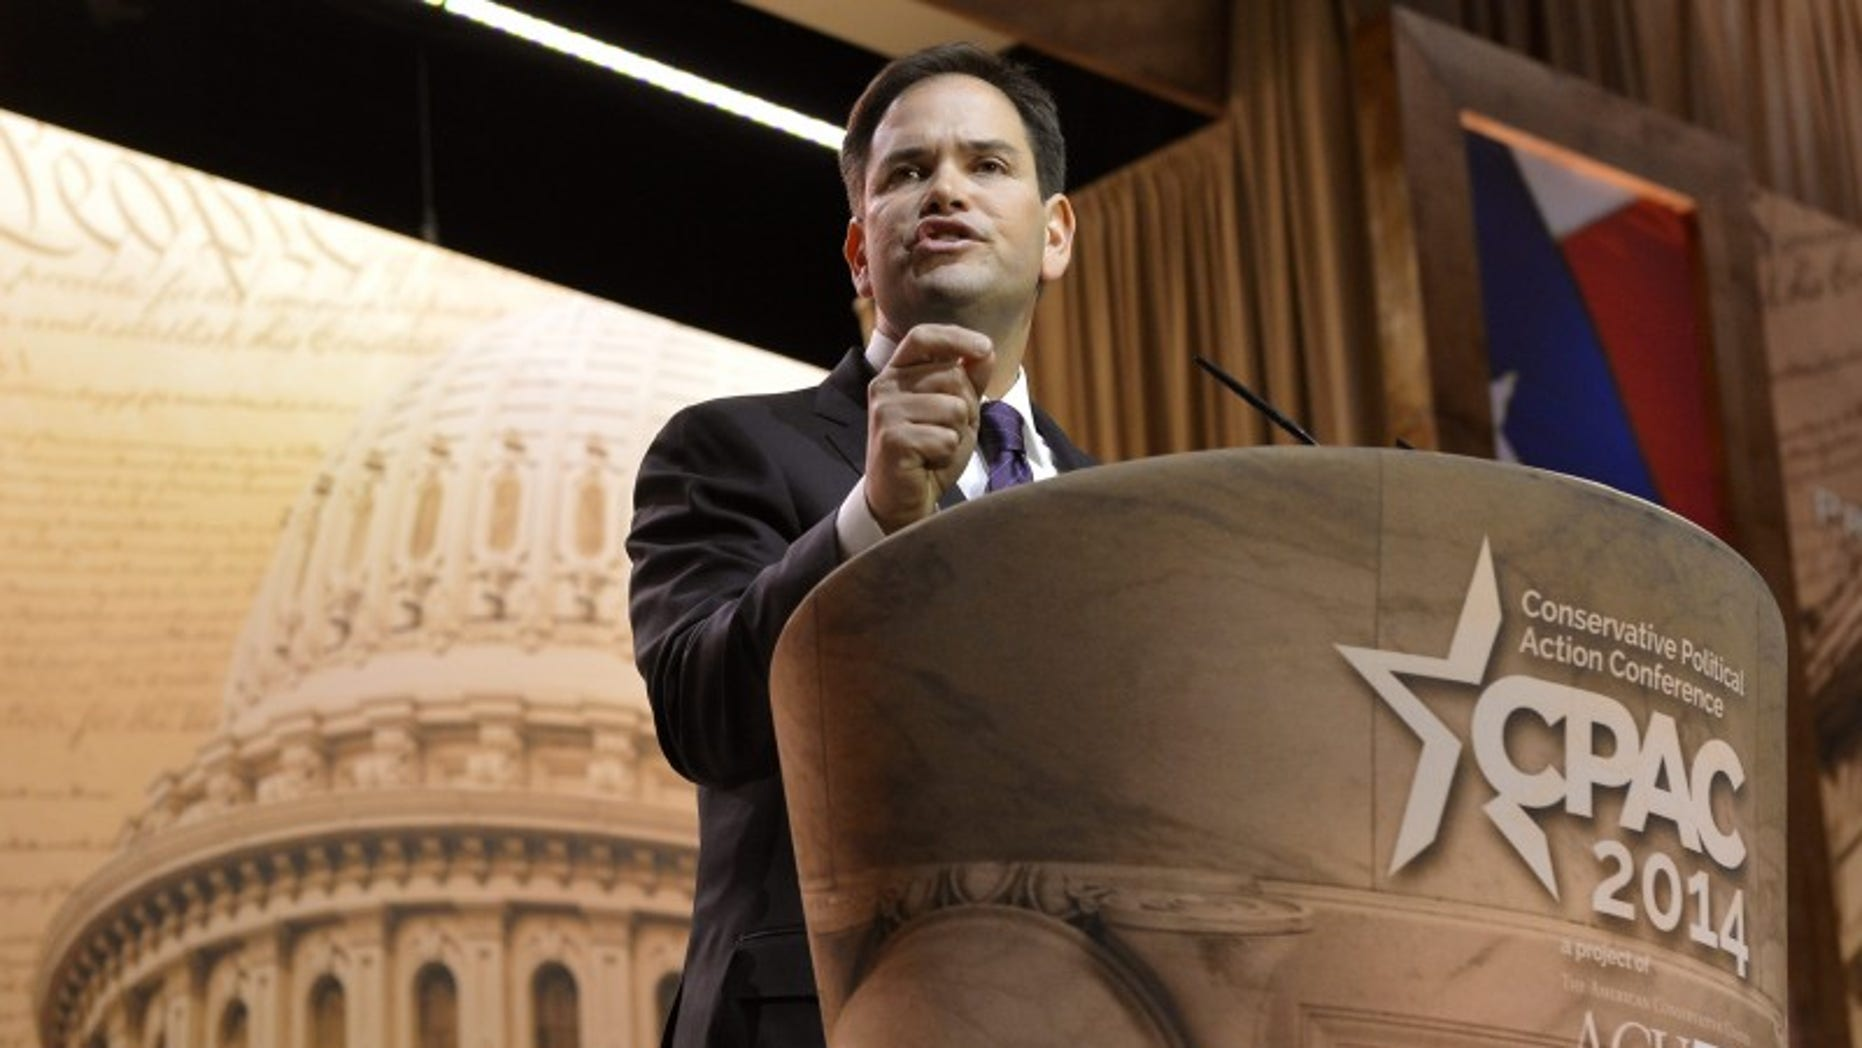 Sen. Marco Rubio (R-FL) makes remarks to the Conservative Political Action Conference (CPAC) in Oxon Hill, Md., March 6, 2014. (REUTERS/Mike Theiler)